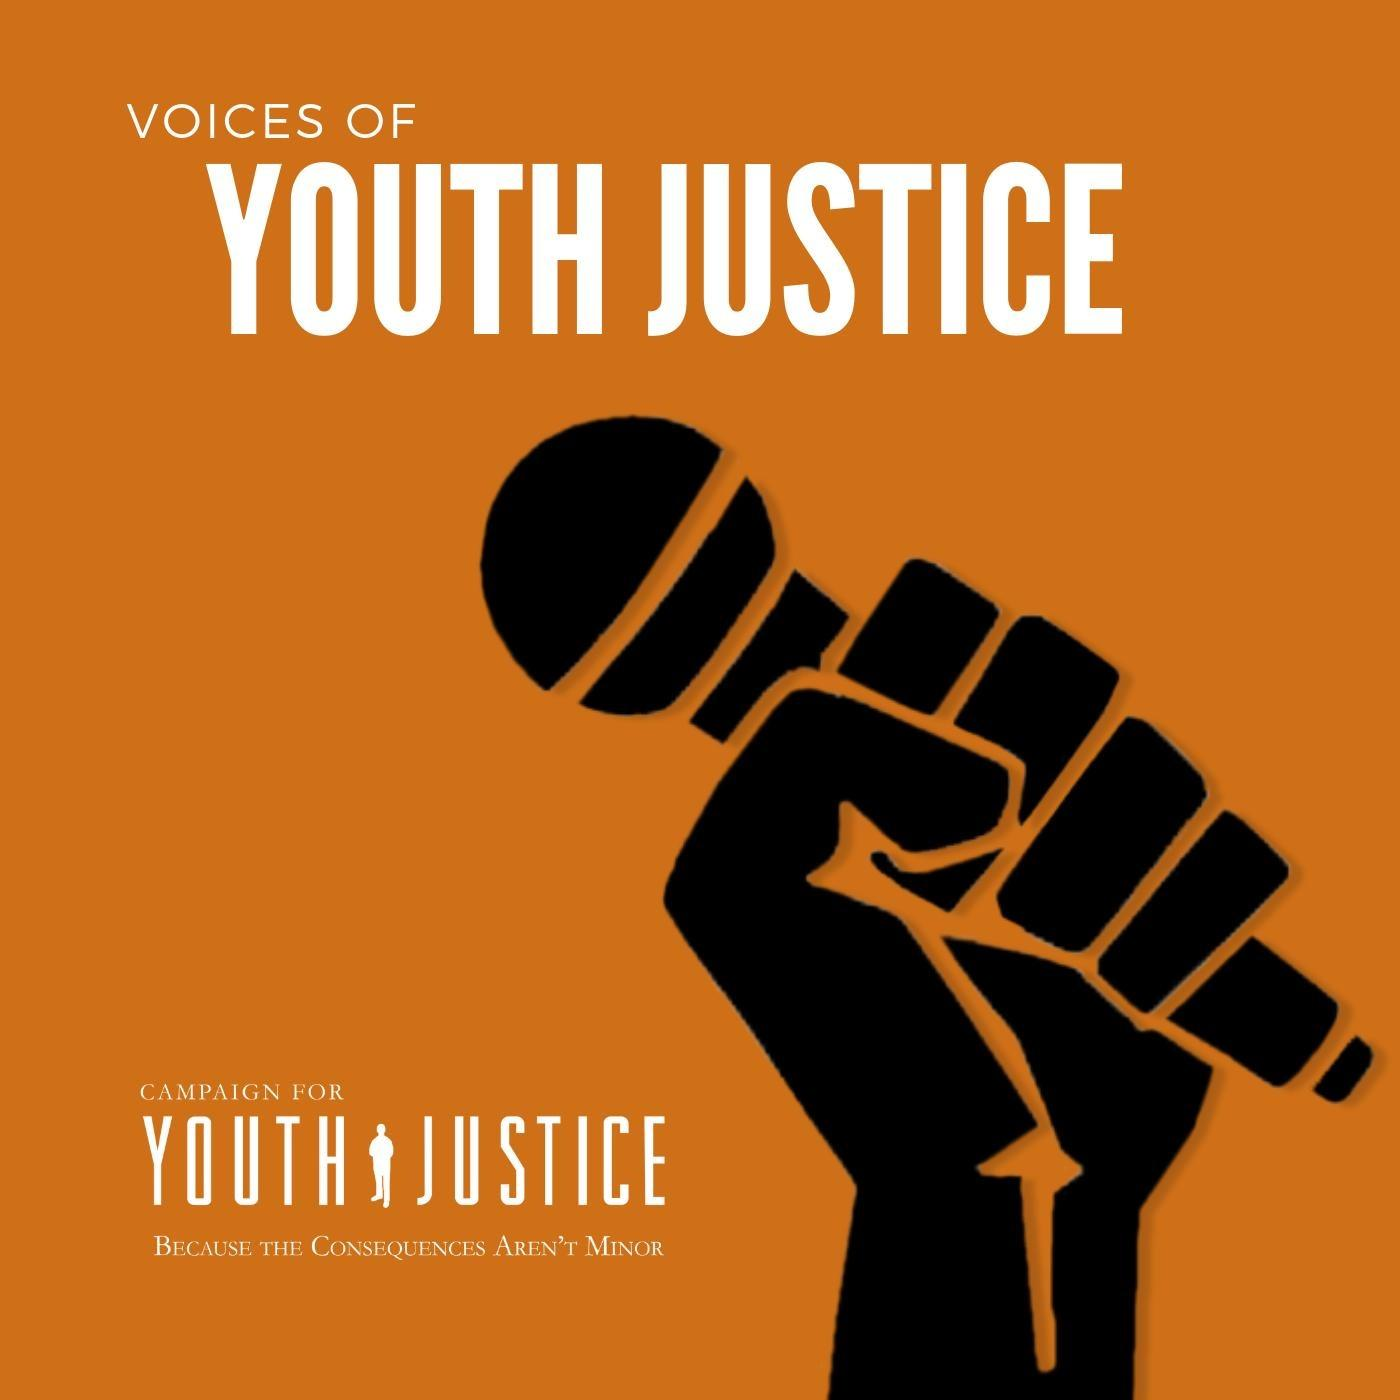 Voices of Youth Justice